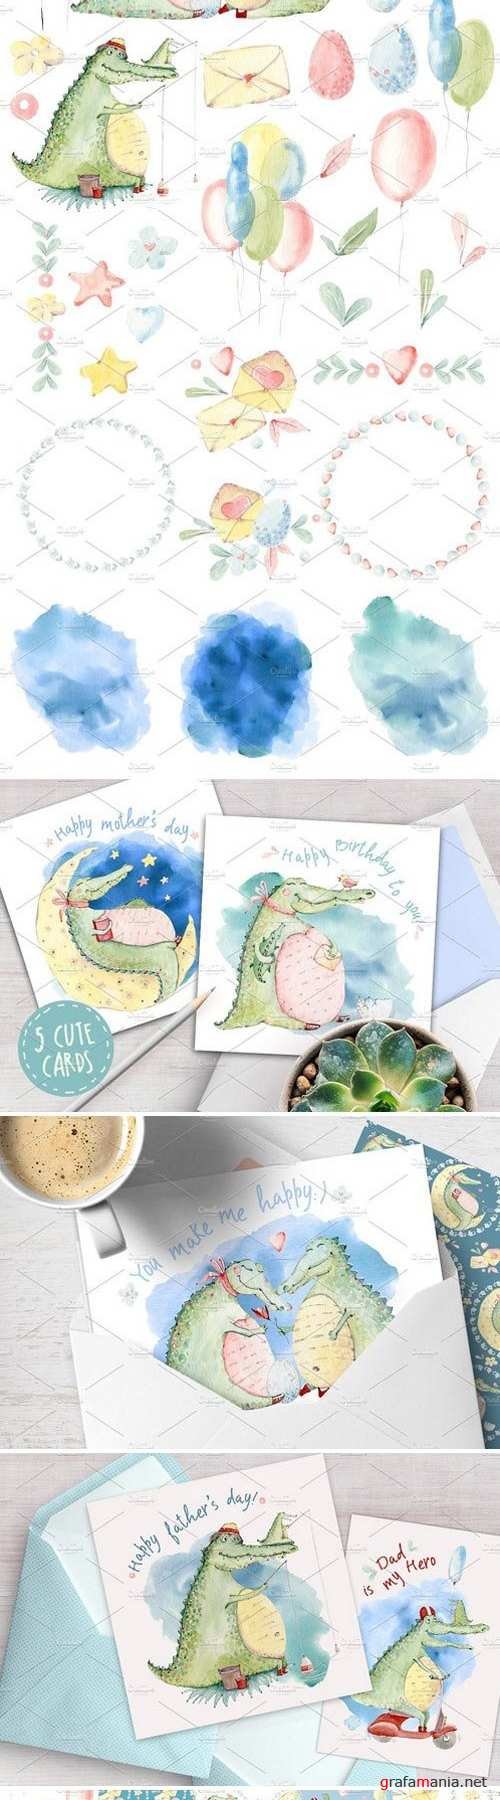 CROCO'S JOY watercolor set 1531713